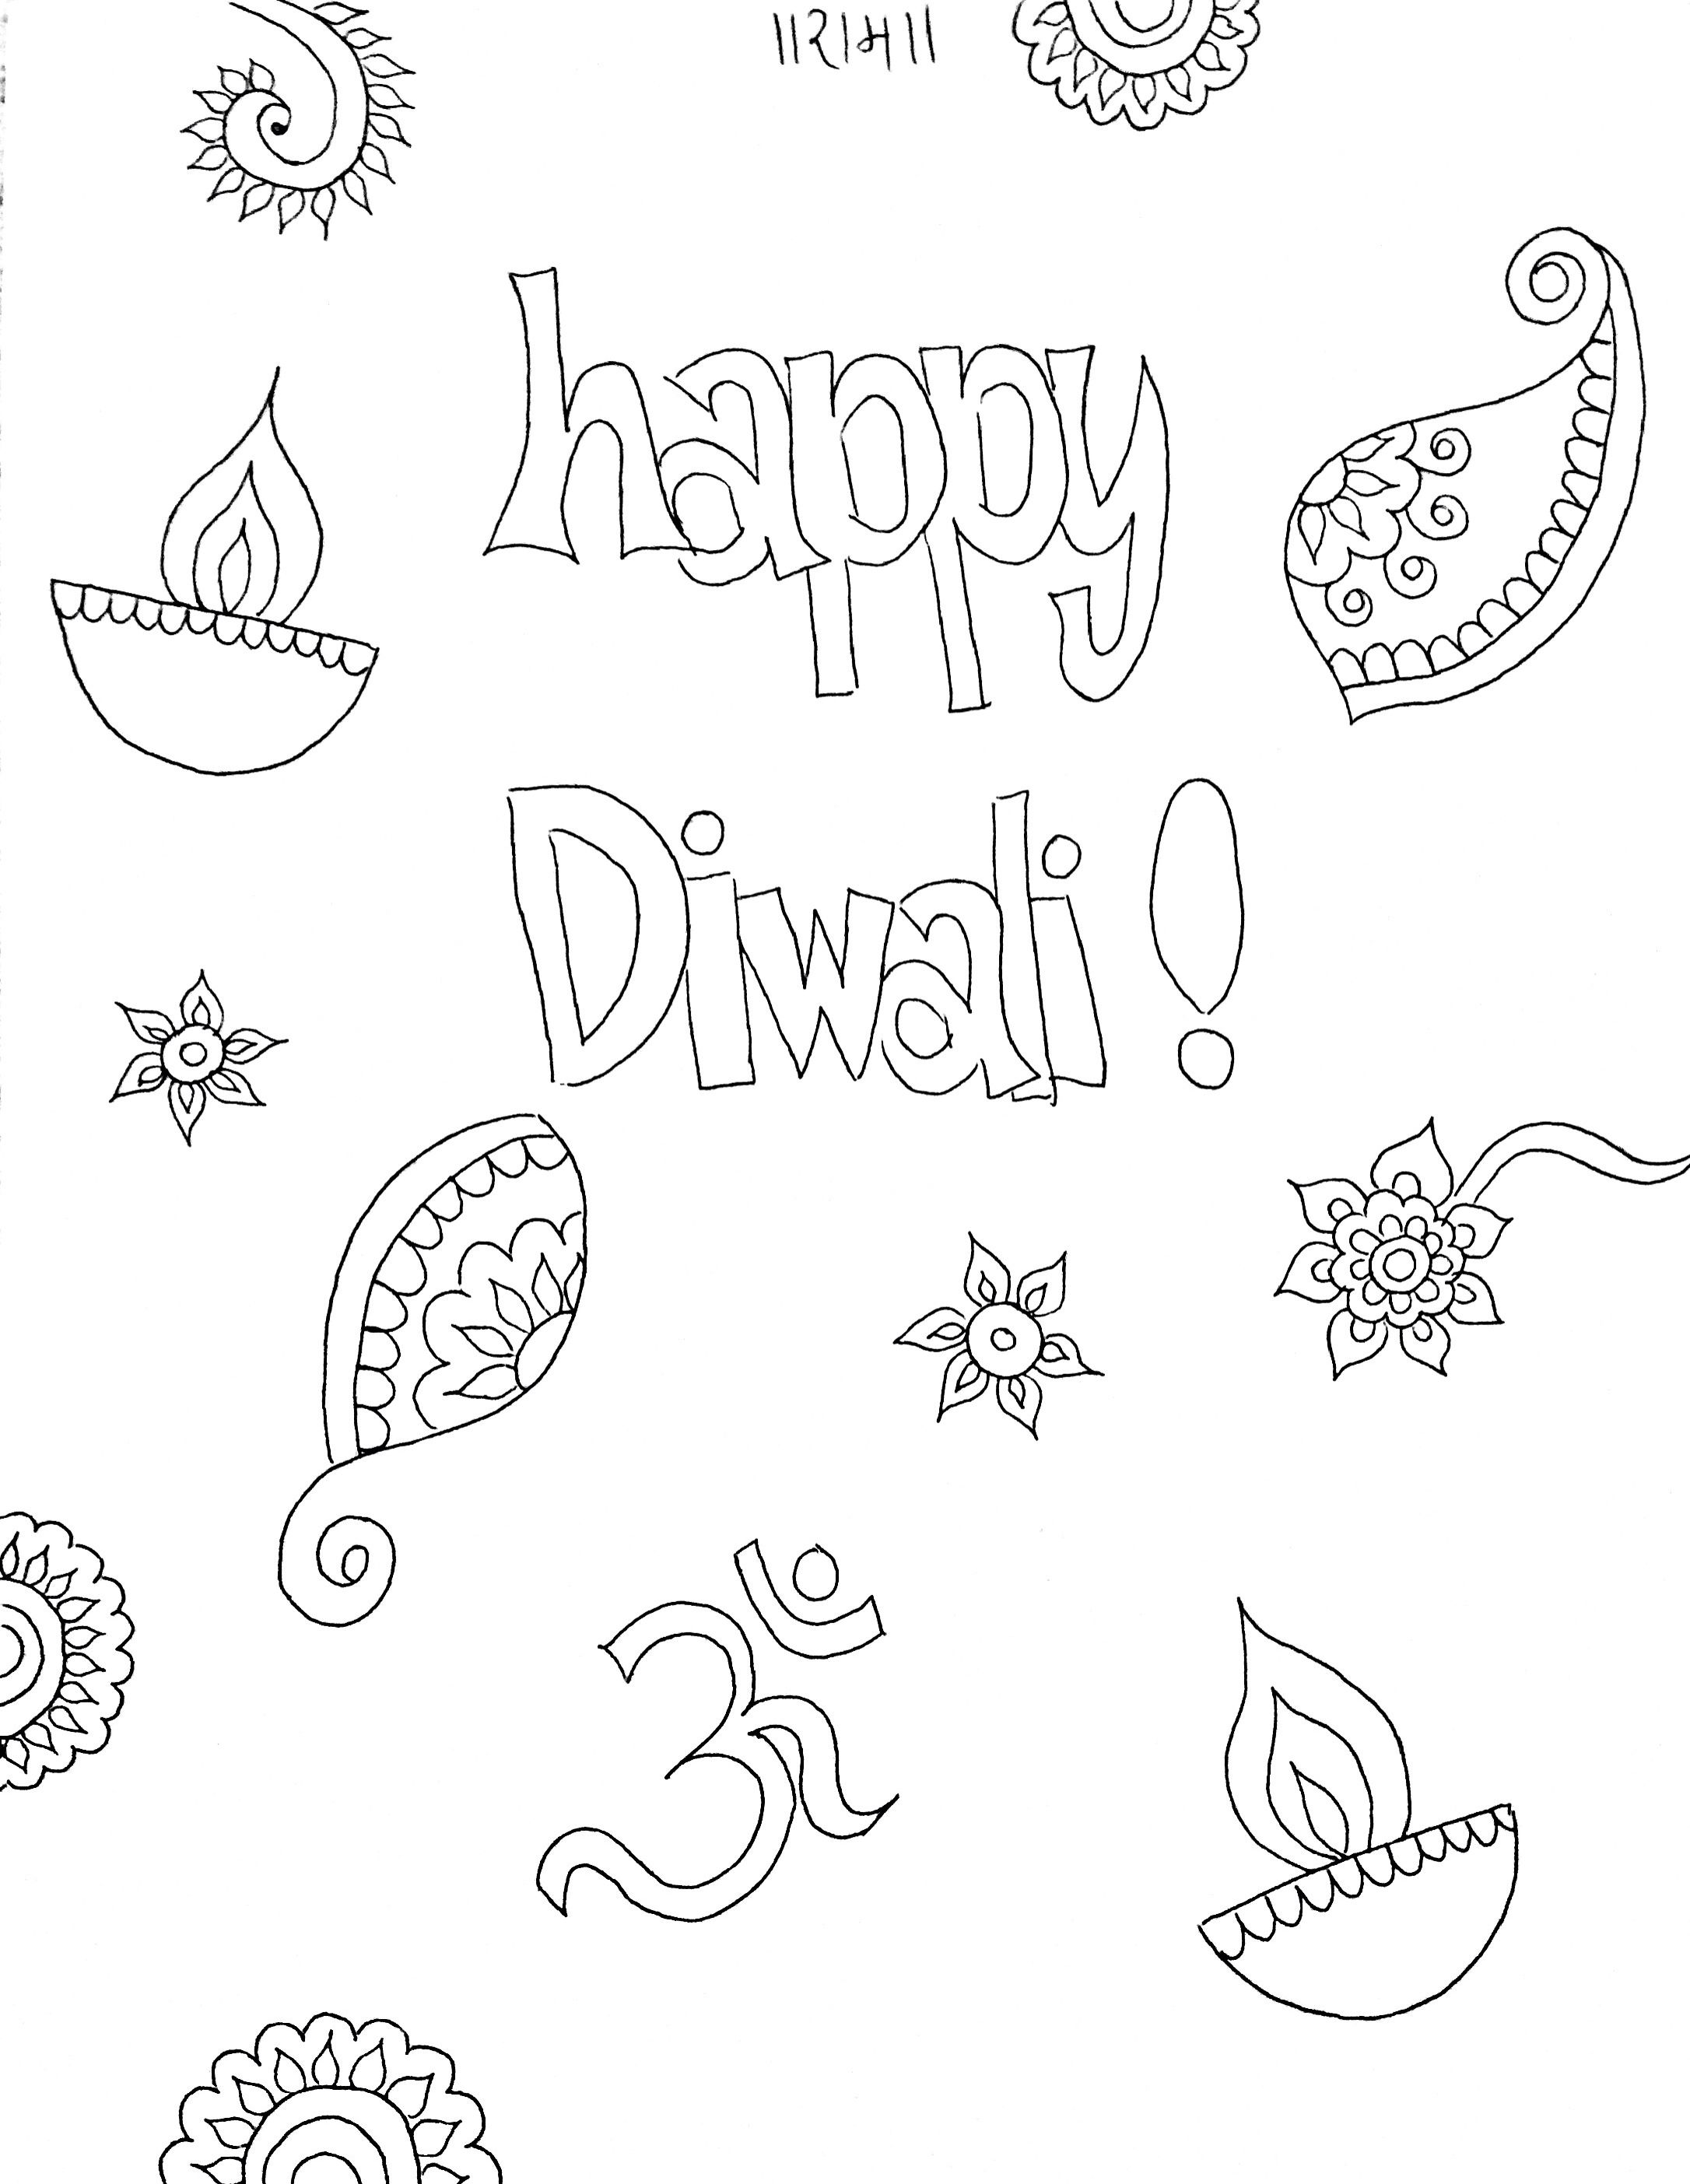 Diwali Coloring Sheet For Kids